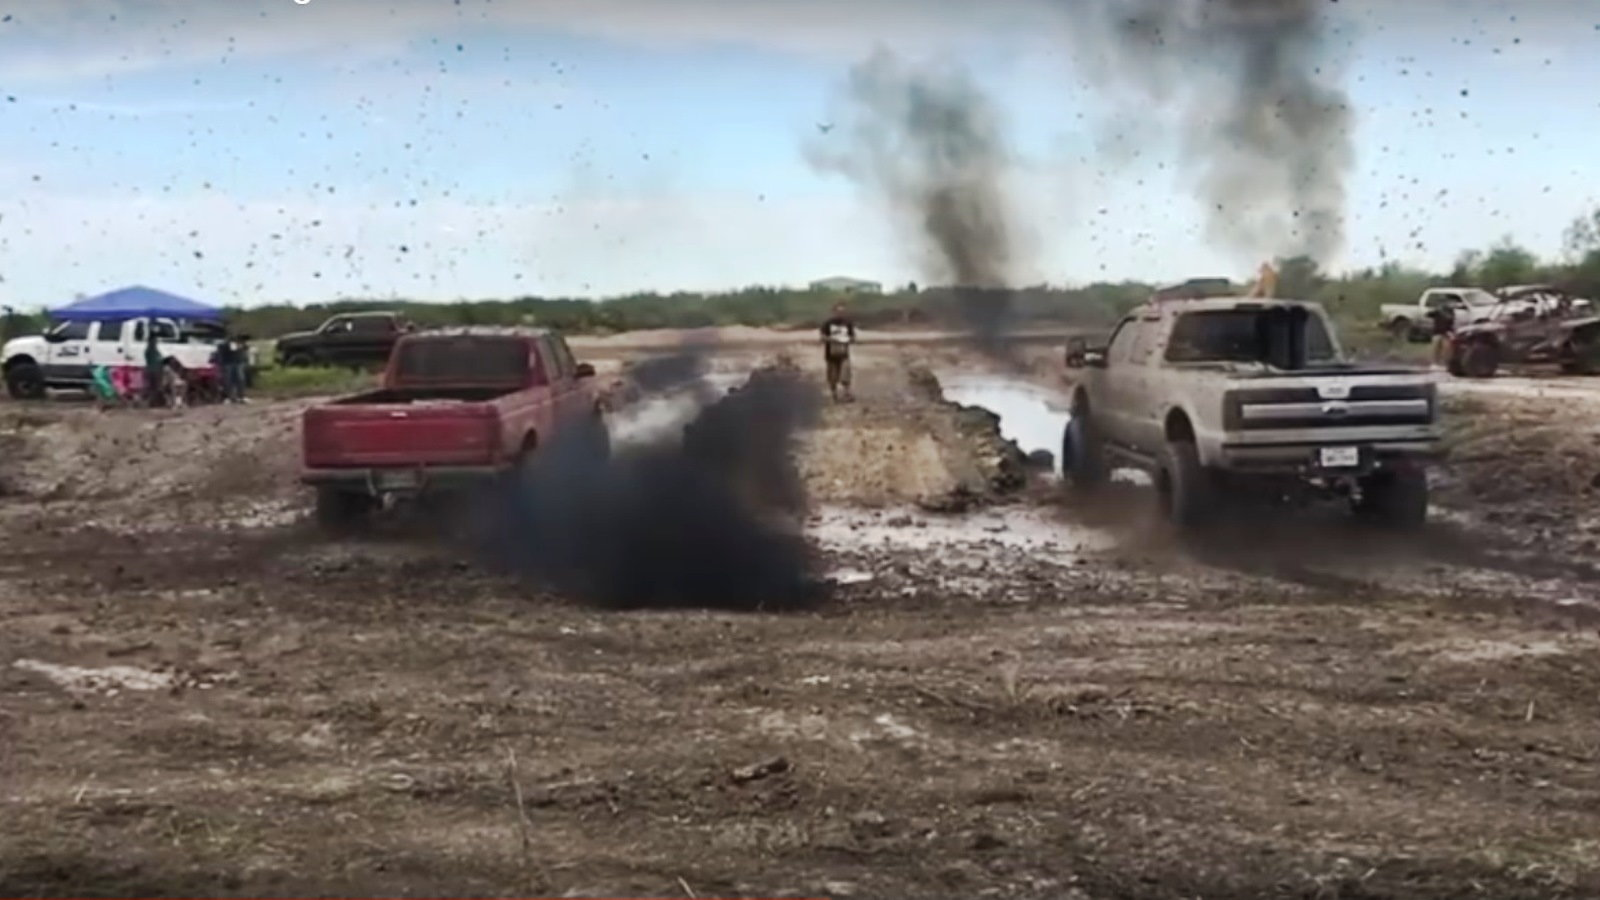 Battle of the F350s